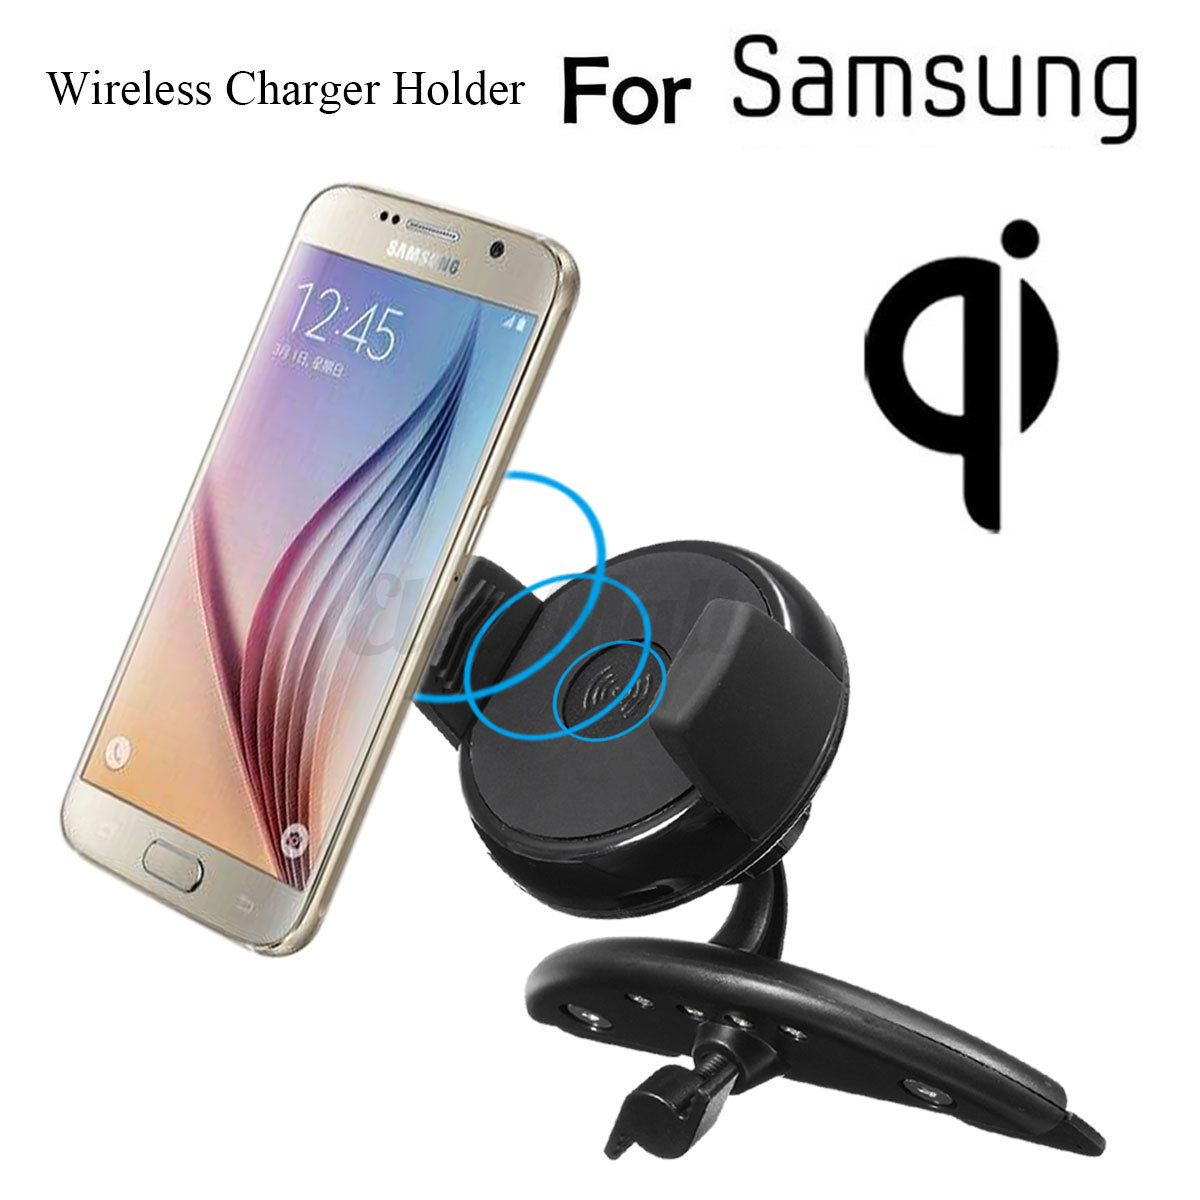 Shipping: Between samsung qi wireless charging car holder and charger black 6 LimitsExclusions Purchase